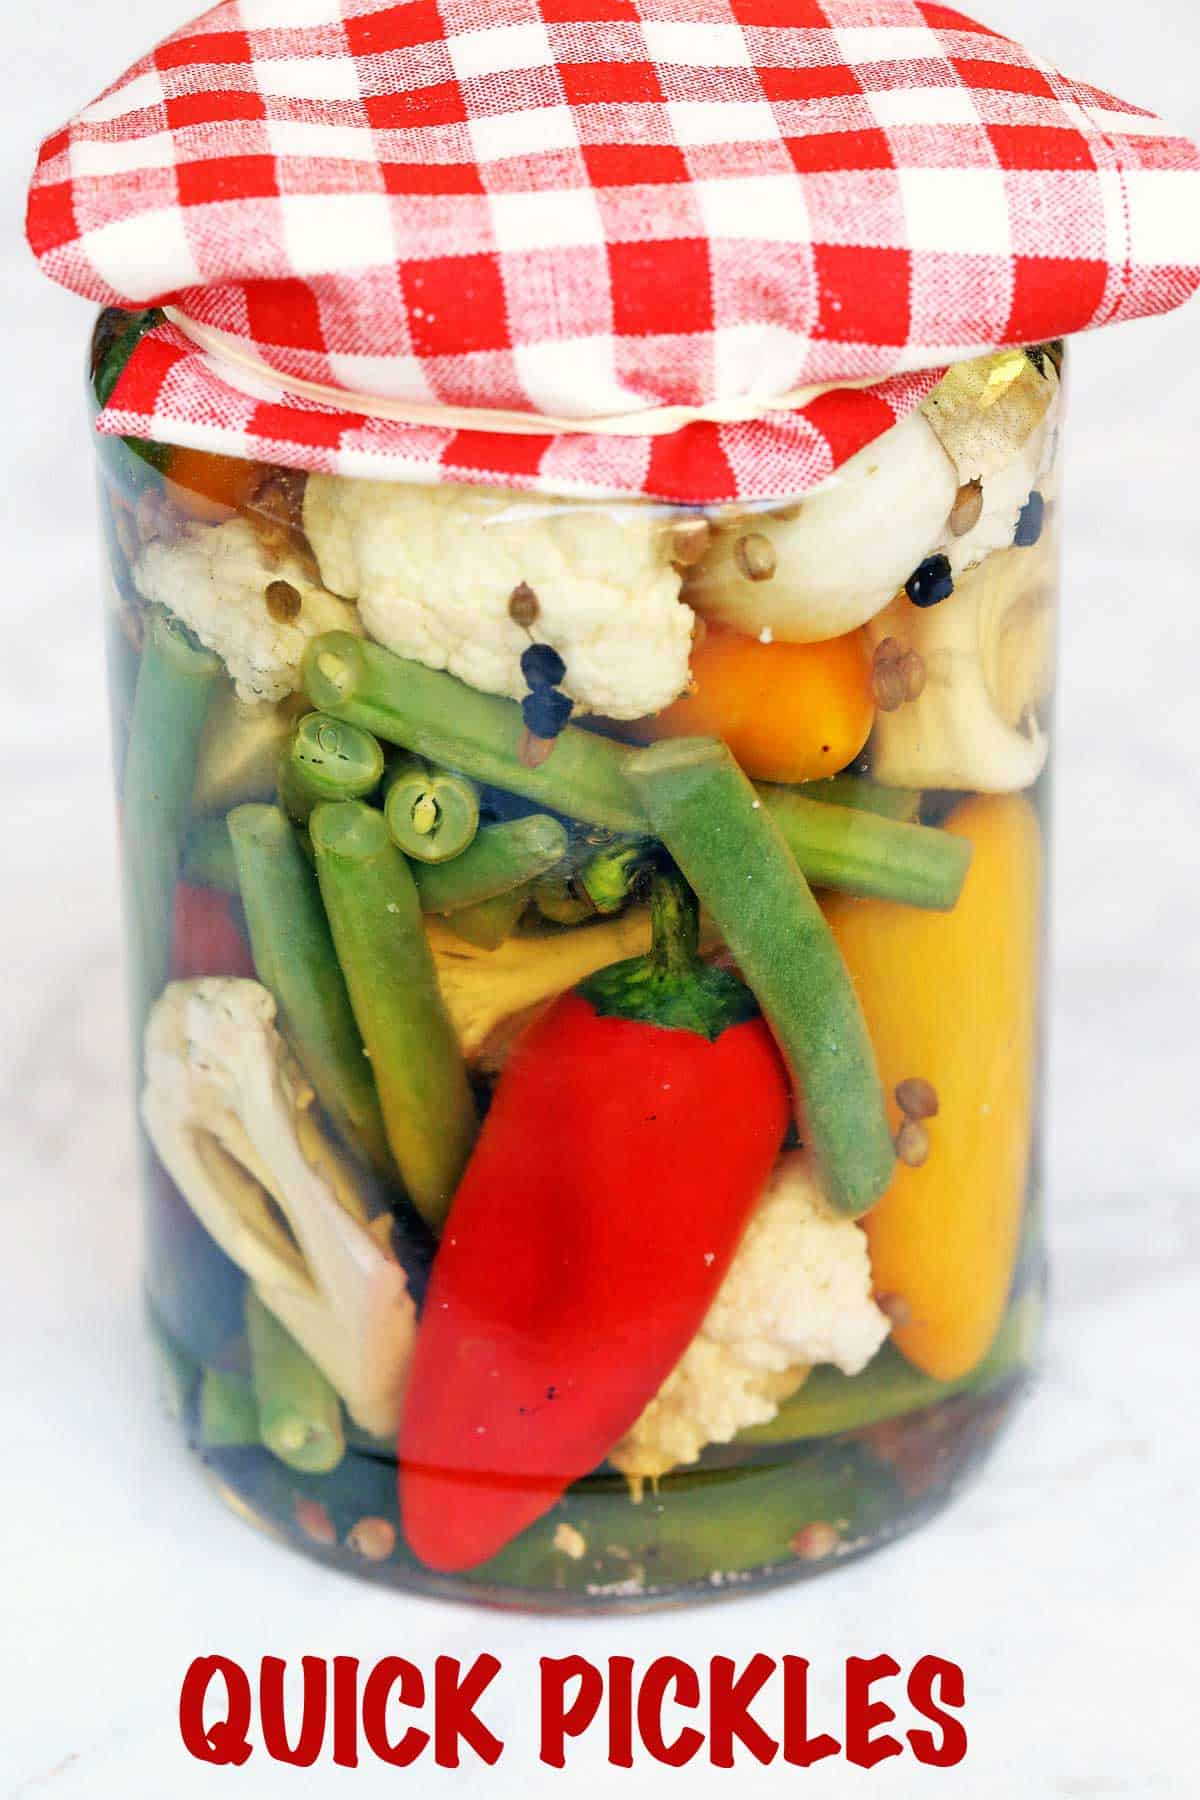 Homemade quick pickles served in a glass jar.